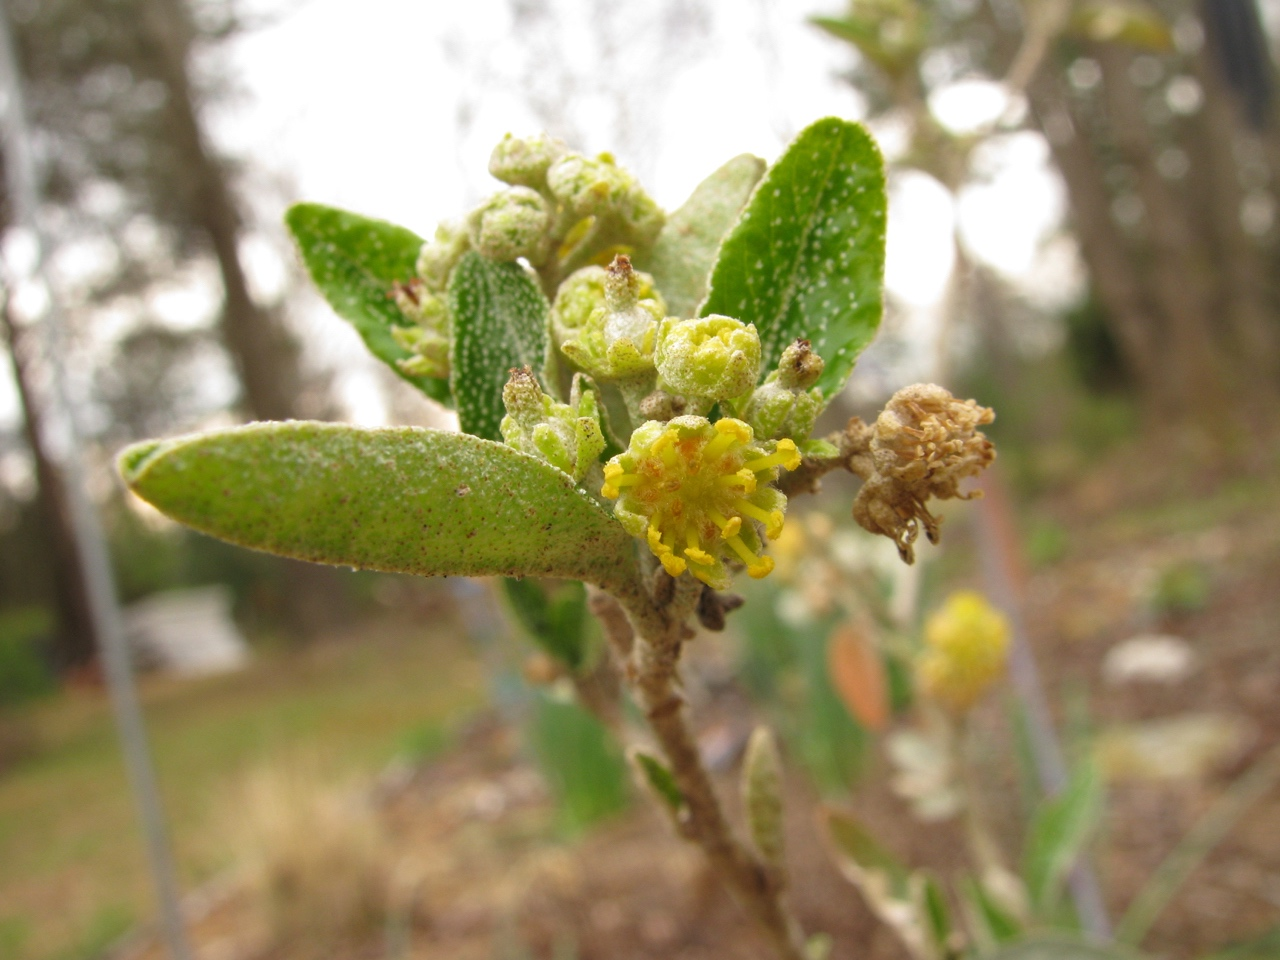 The Scientific Name is Croton alabamensis var. alabamensis. You will likely hear them called Alabama Croton. This picture shows the Small yellow flowers in March of Croton alabamensis var. alabamensis